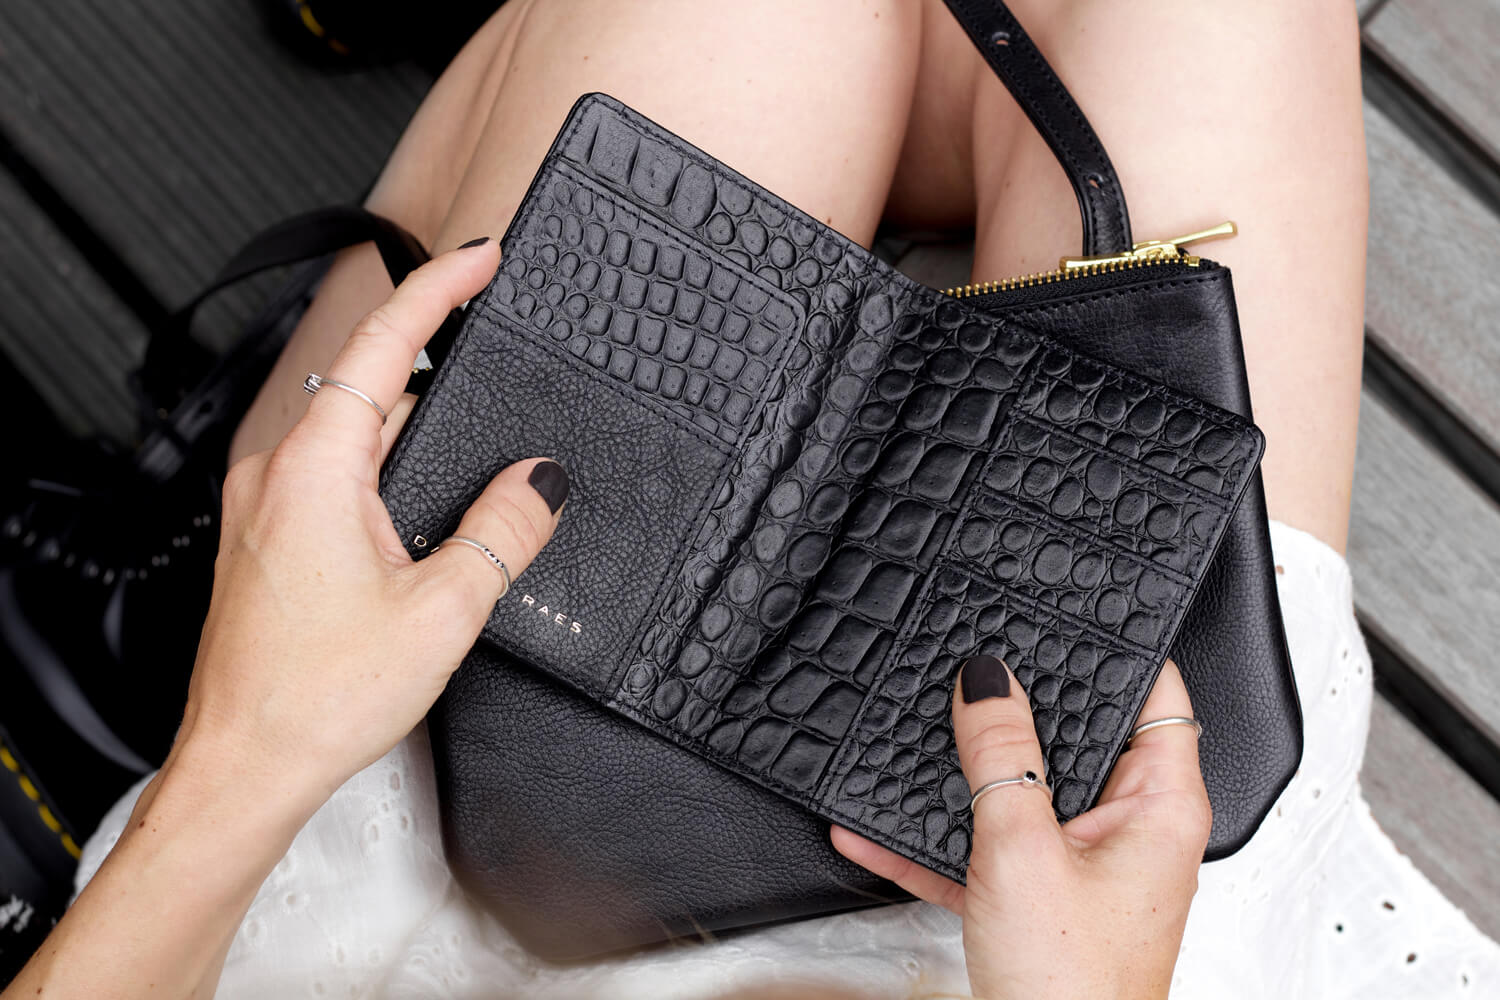 283651 daphny raes luxury leather passport holder black croco 79 a89cdd original 1529673302